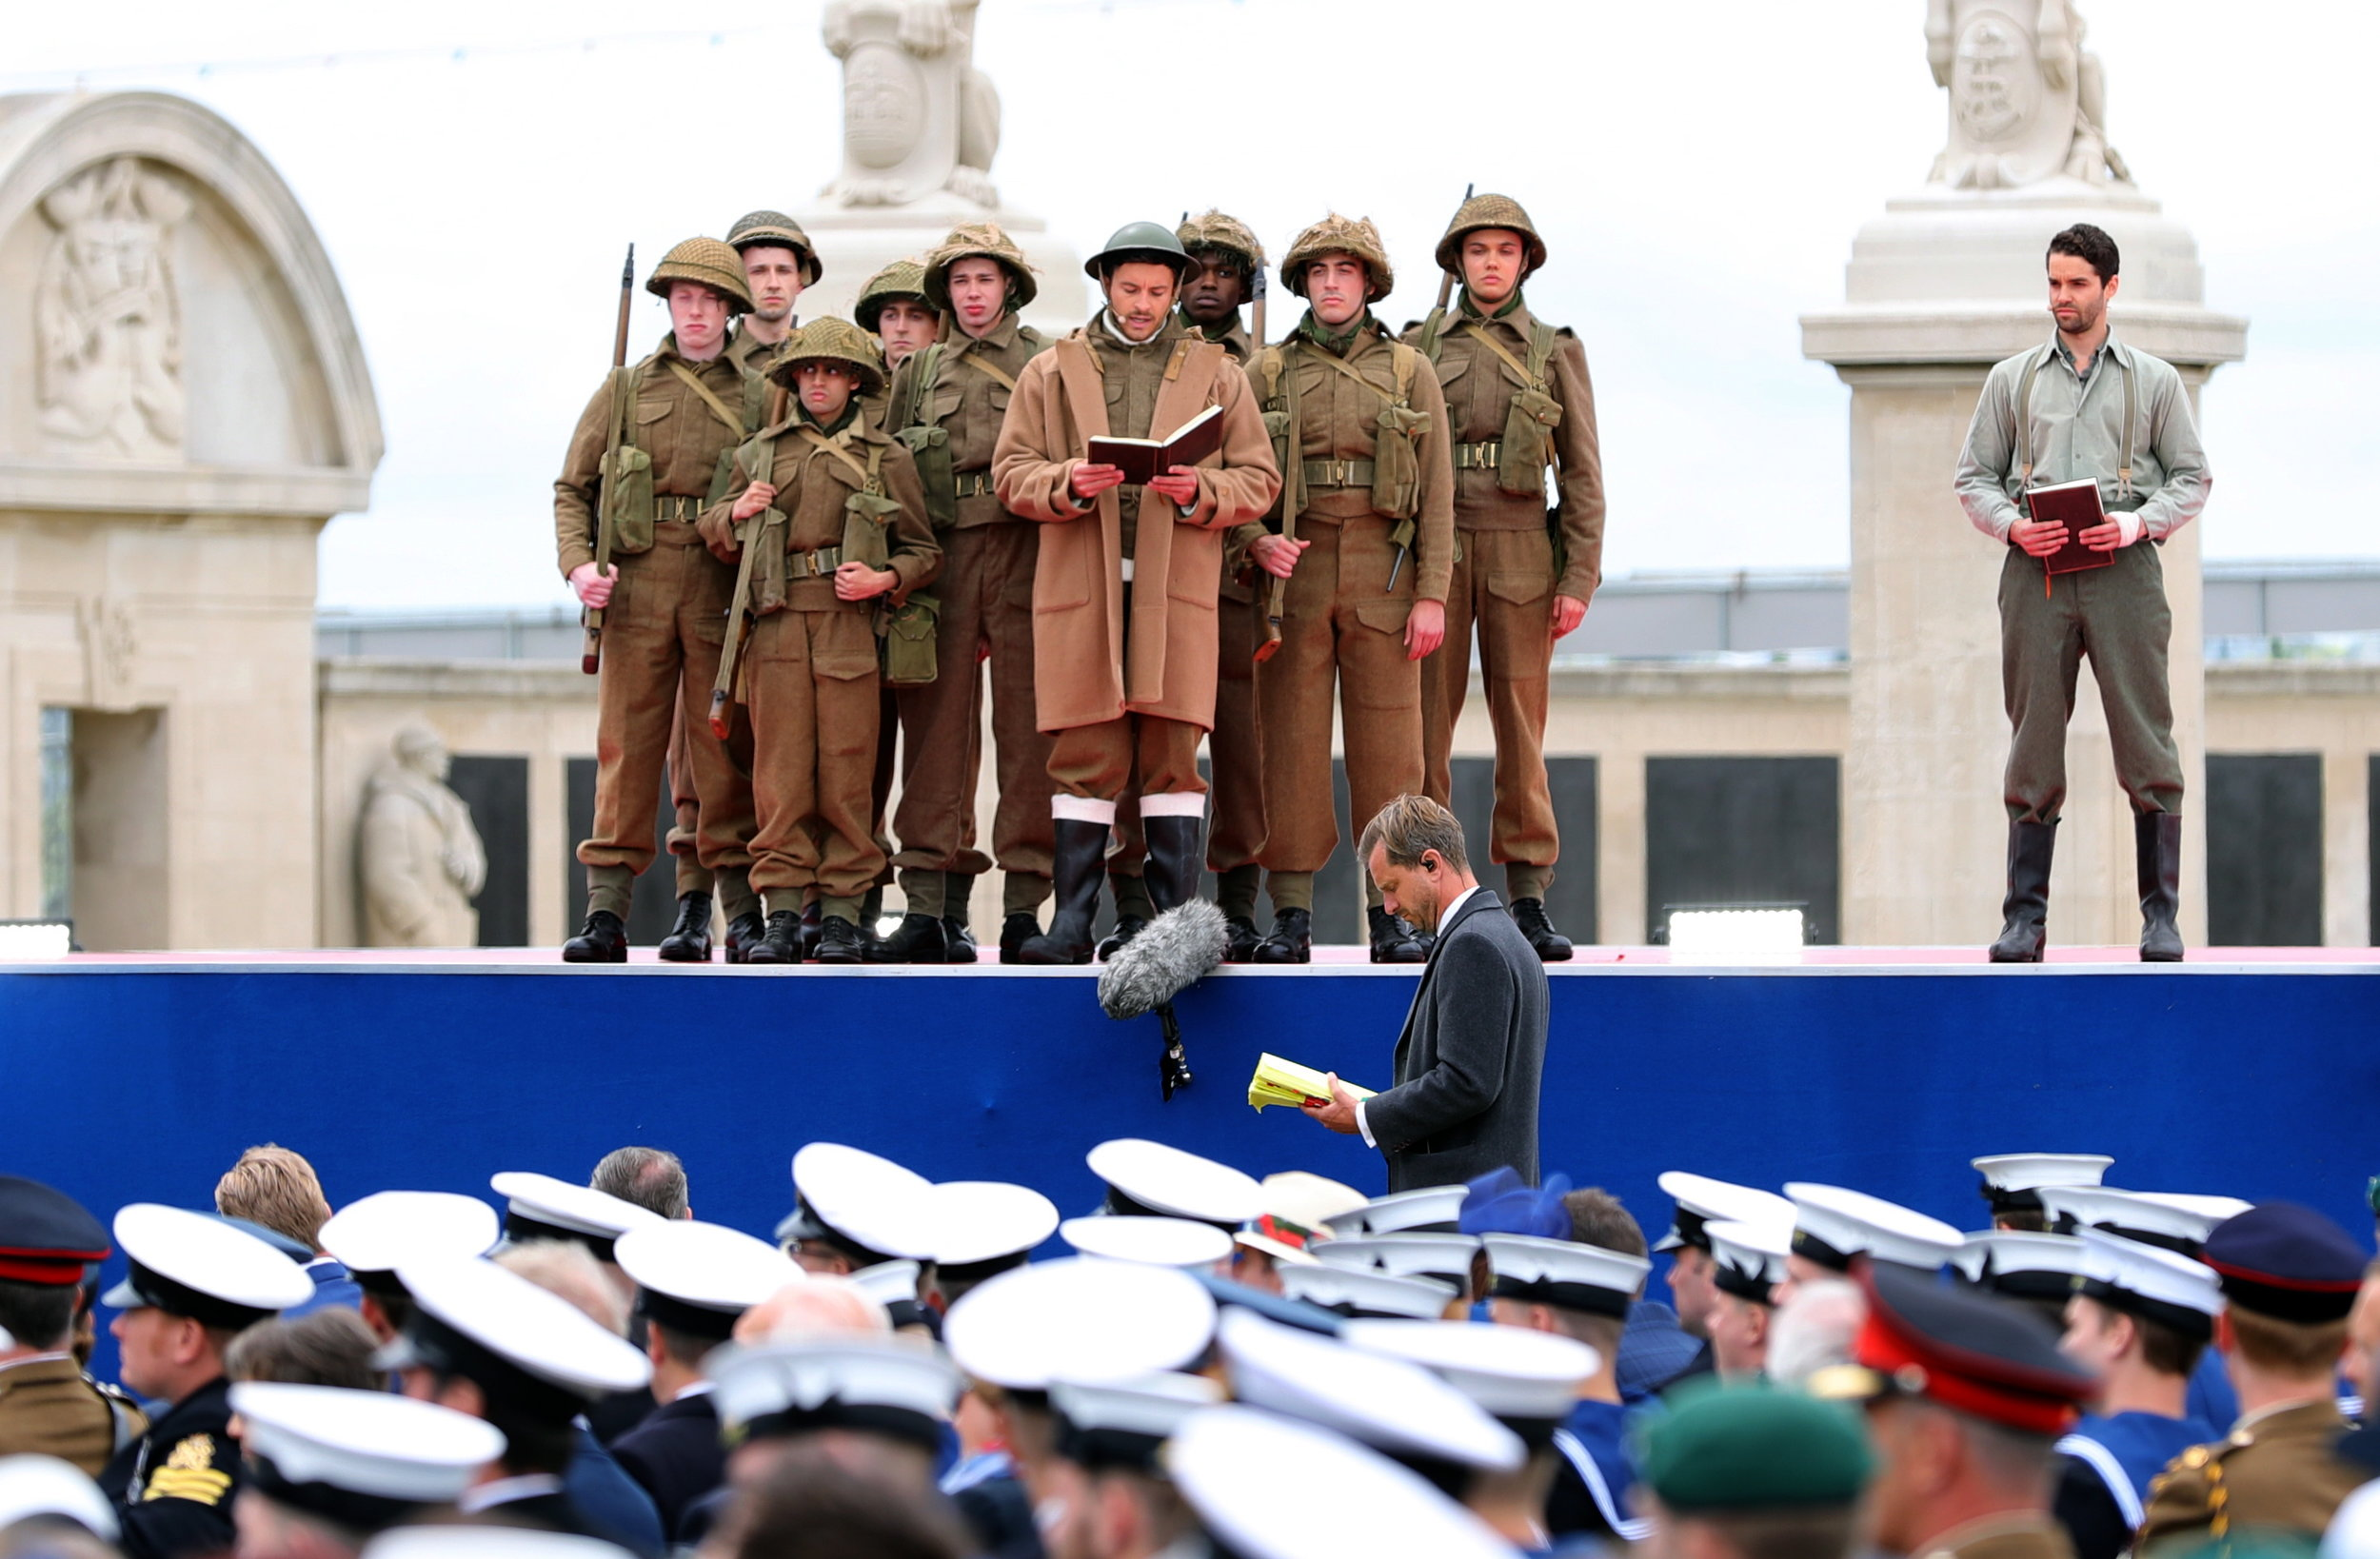 Portsmouth D-Day Commemorations in Pictures11.jpg